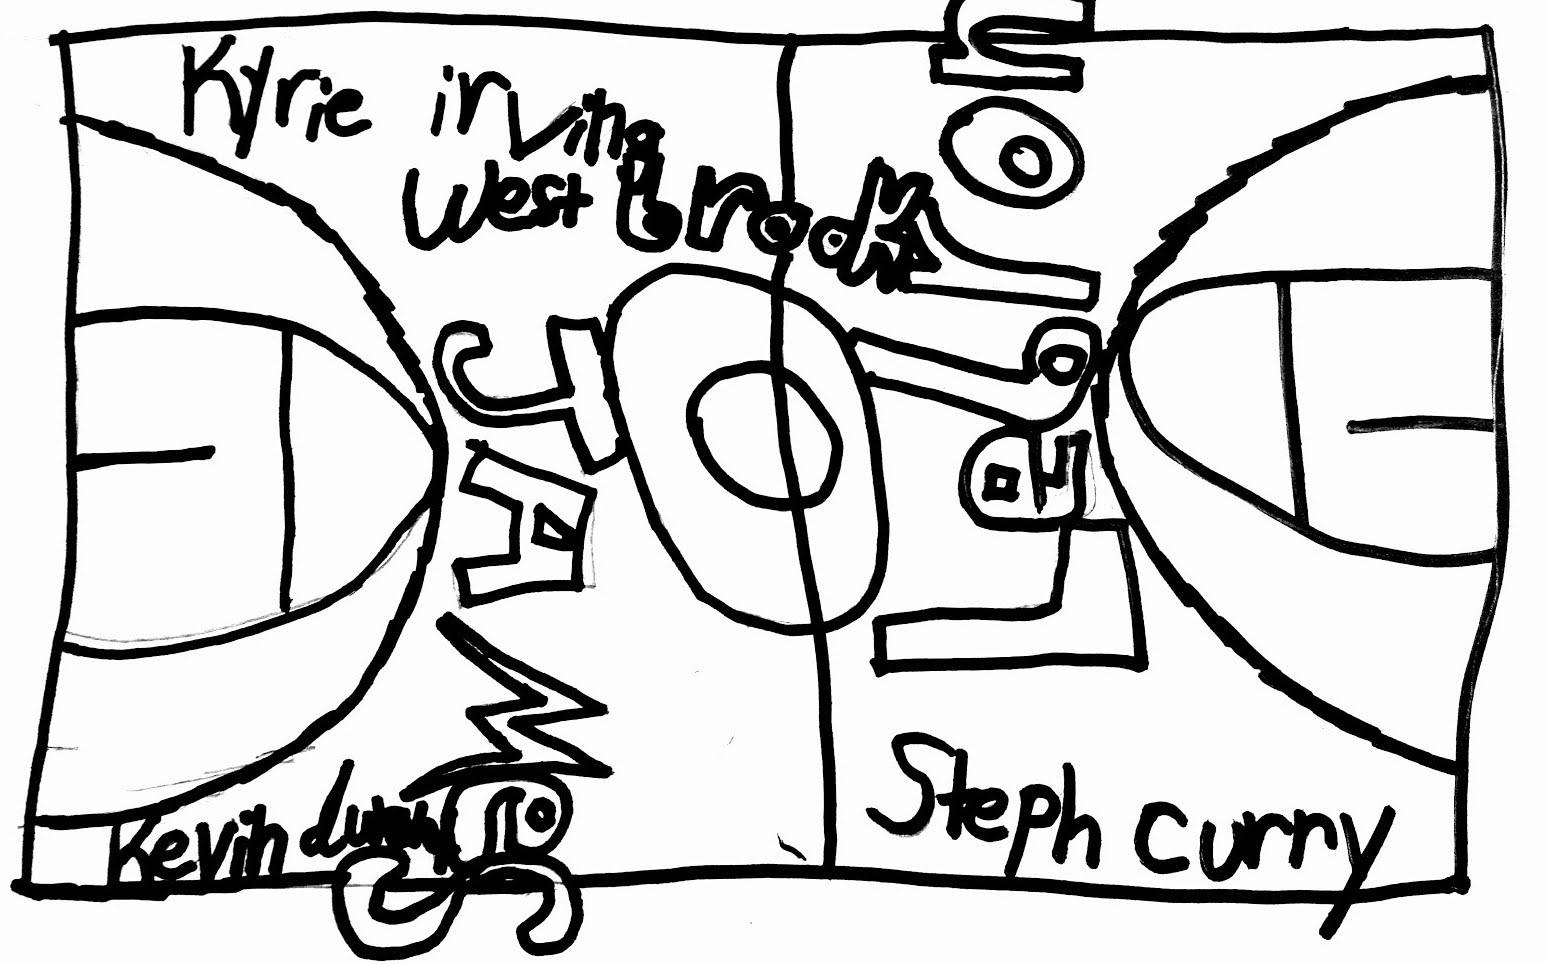 Proposed Basketball Court Design by Jorge.